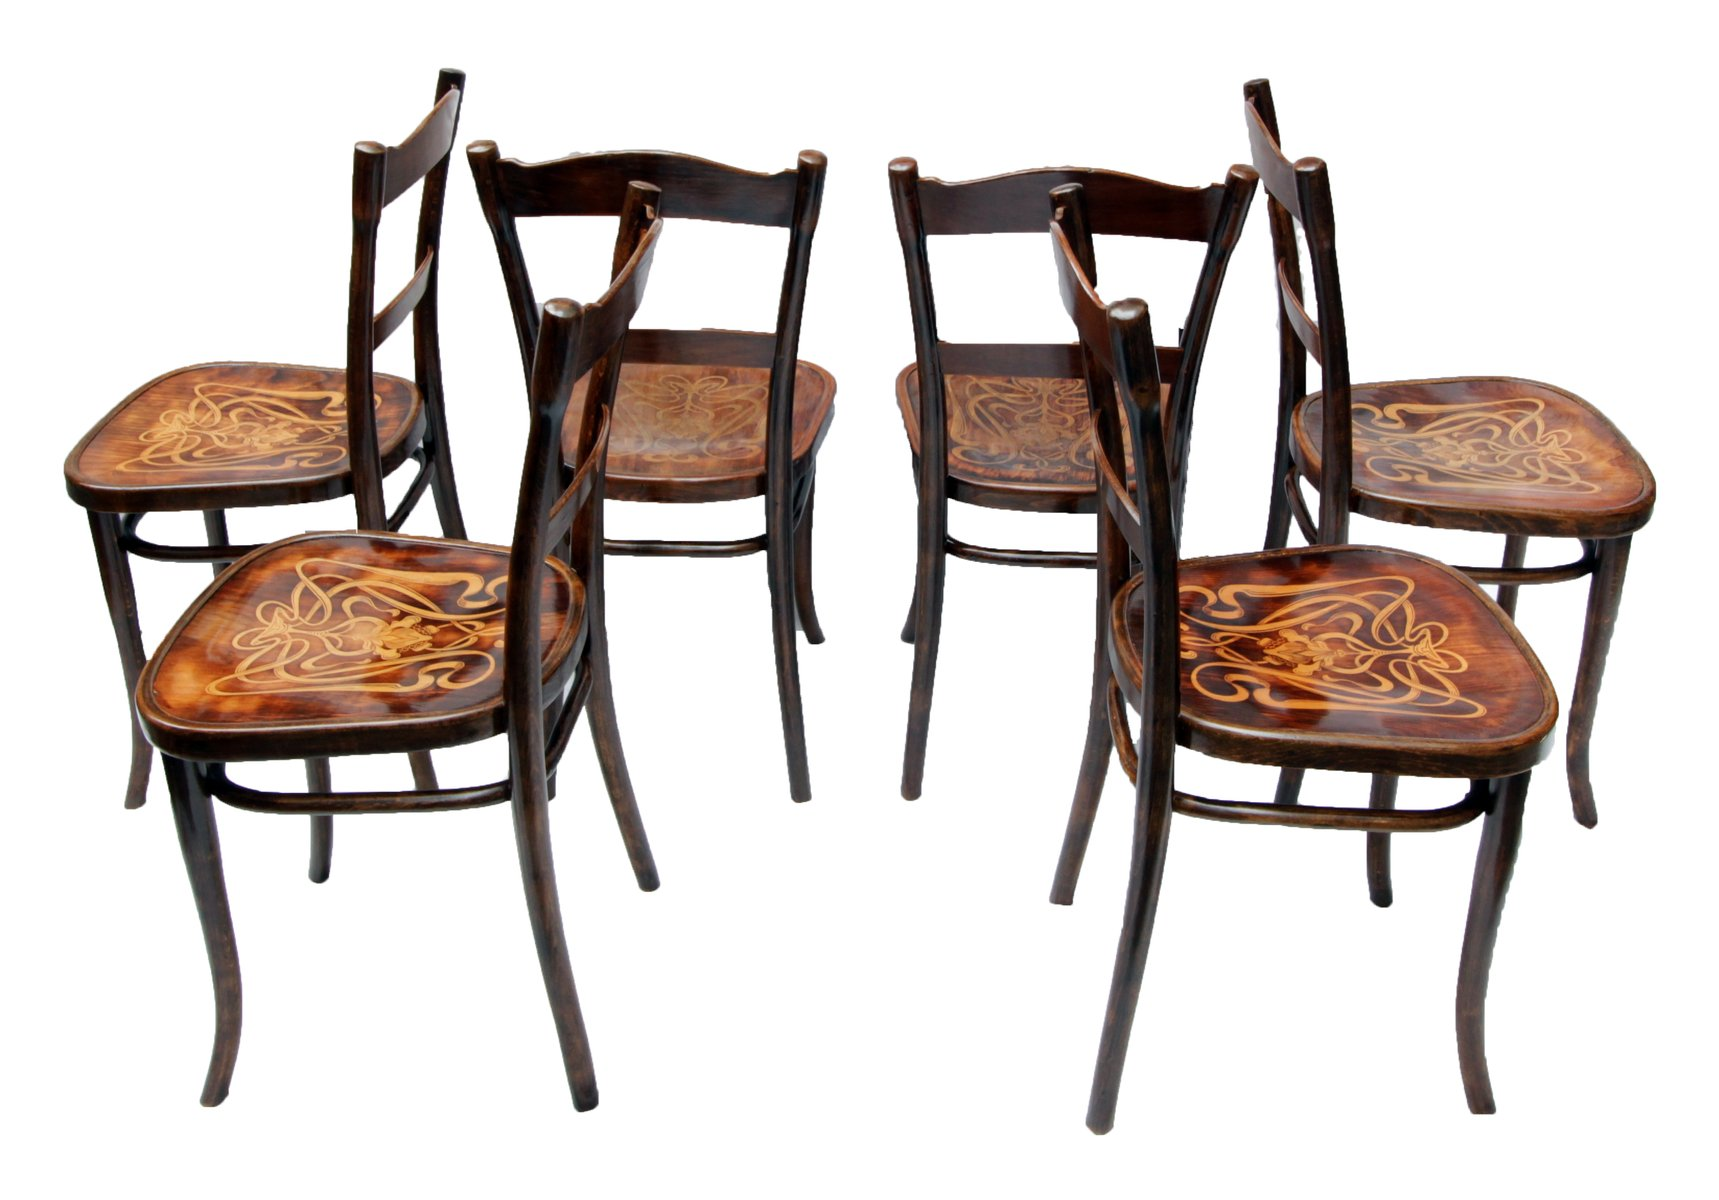 Antique Decorated Bentwood Dining Chairs From Thonet Set Of 6 For Sale At Pa